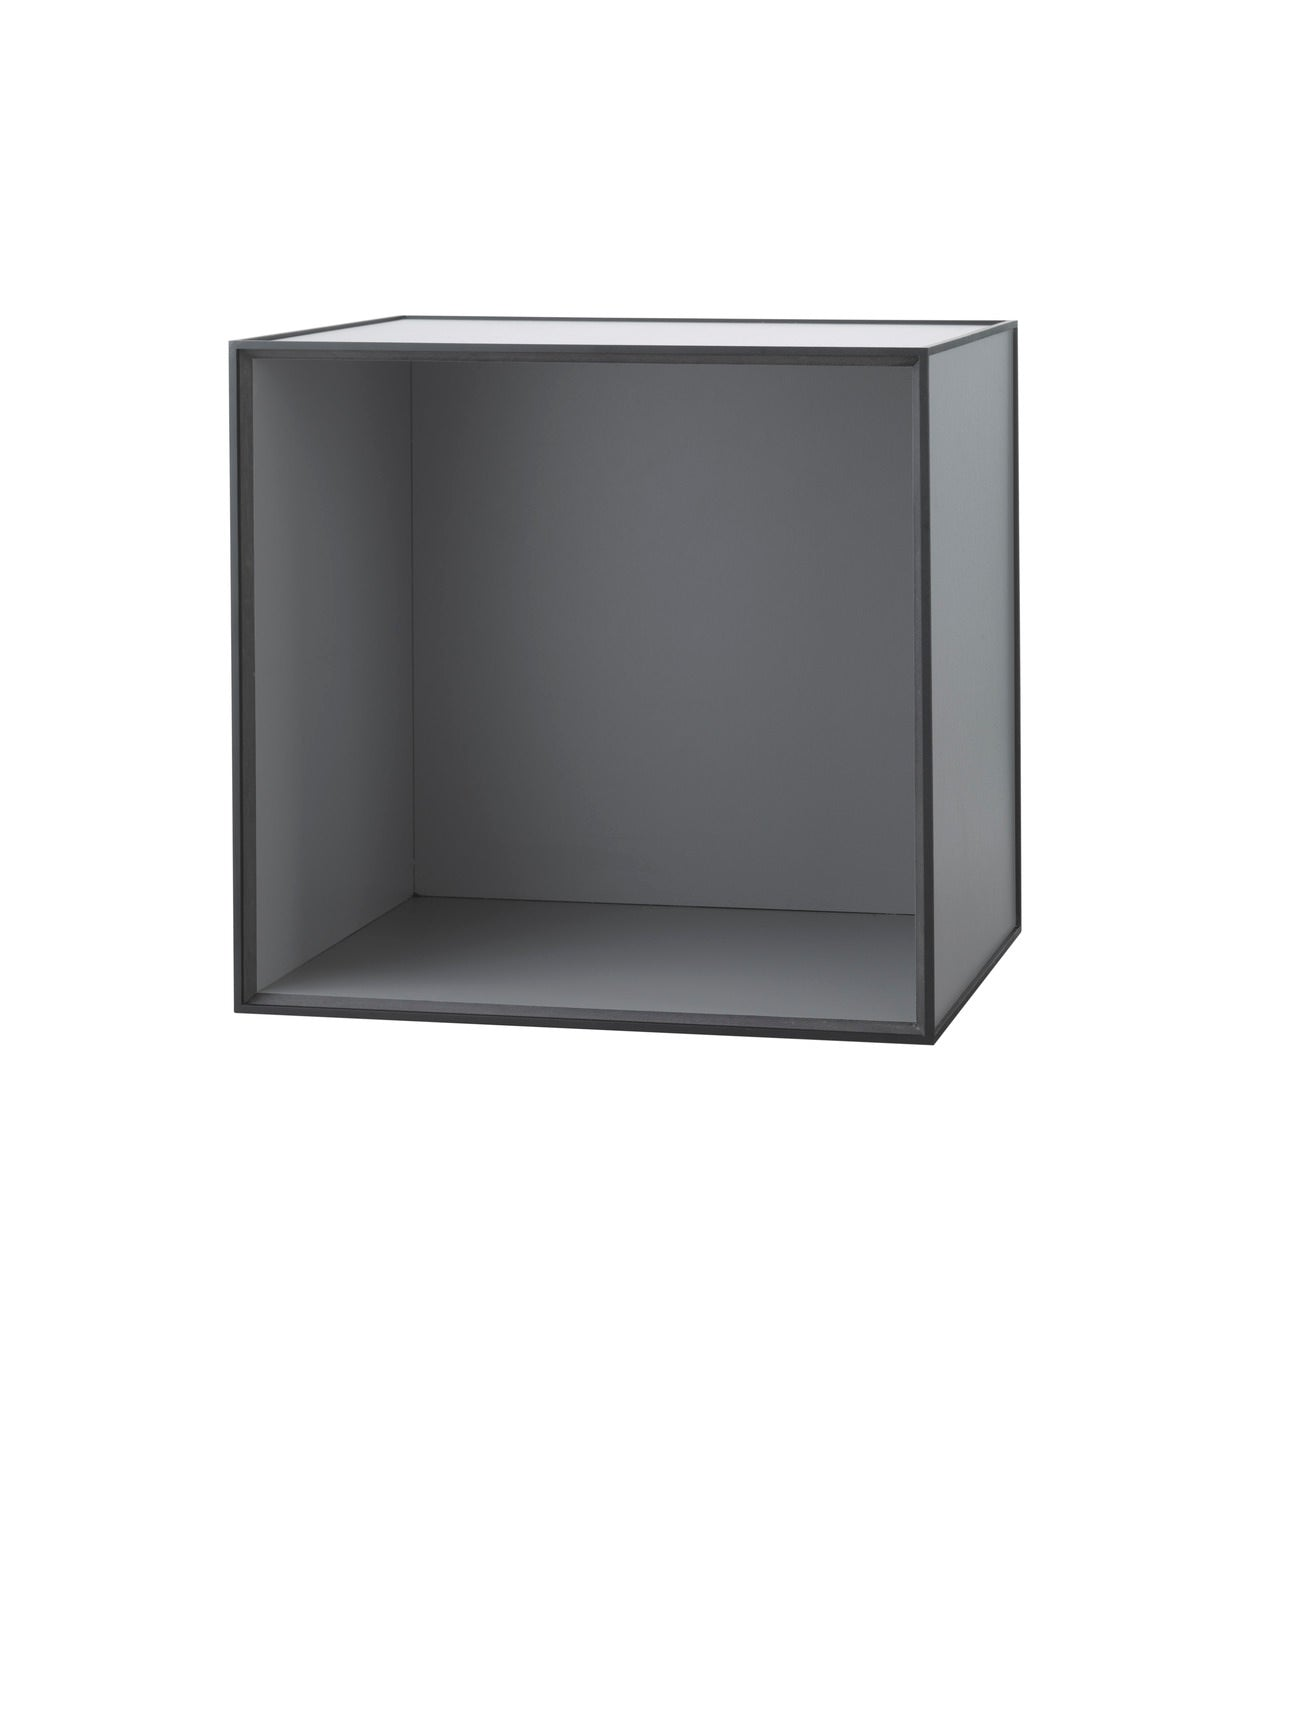 Frame 49 INCL door and shelf, 42x49x49, dark grey fra By Lassen